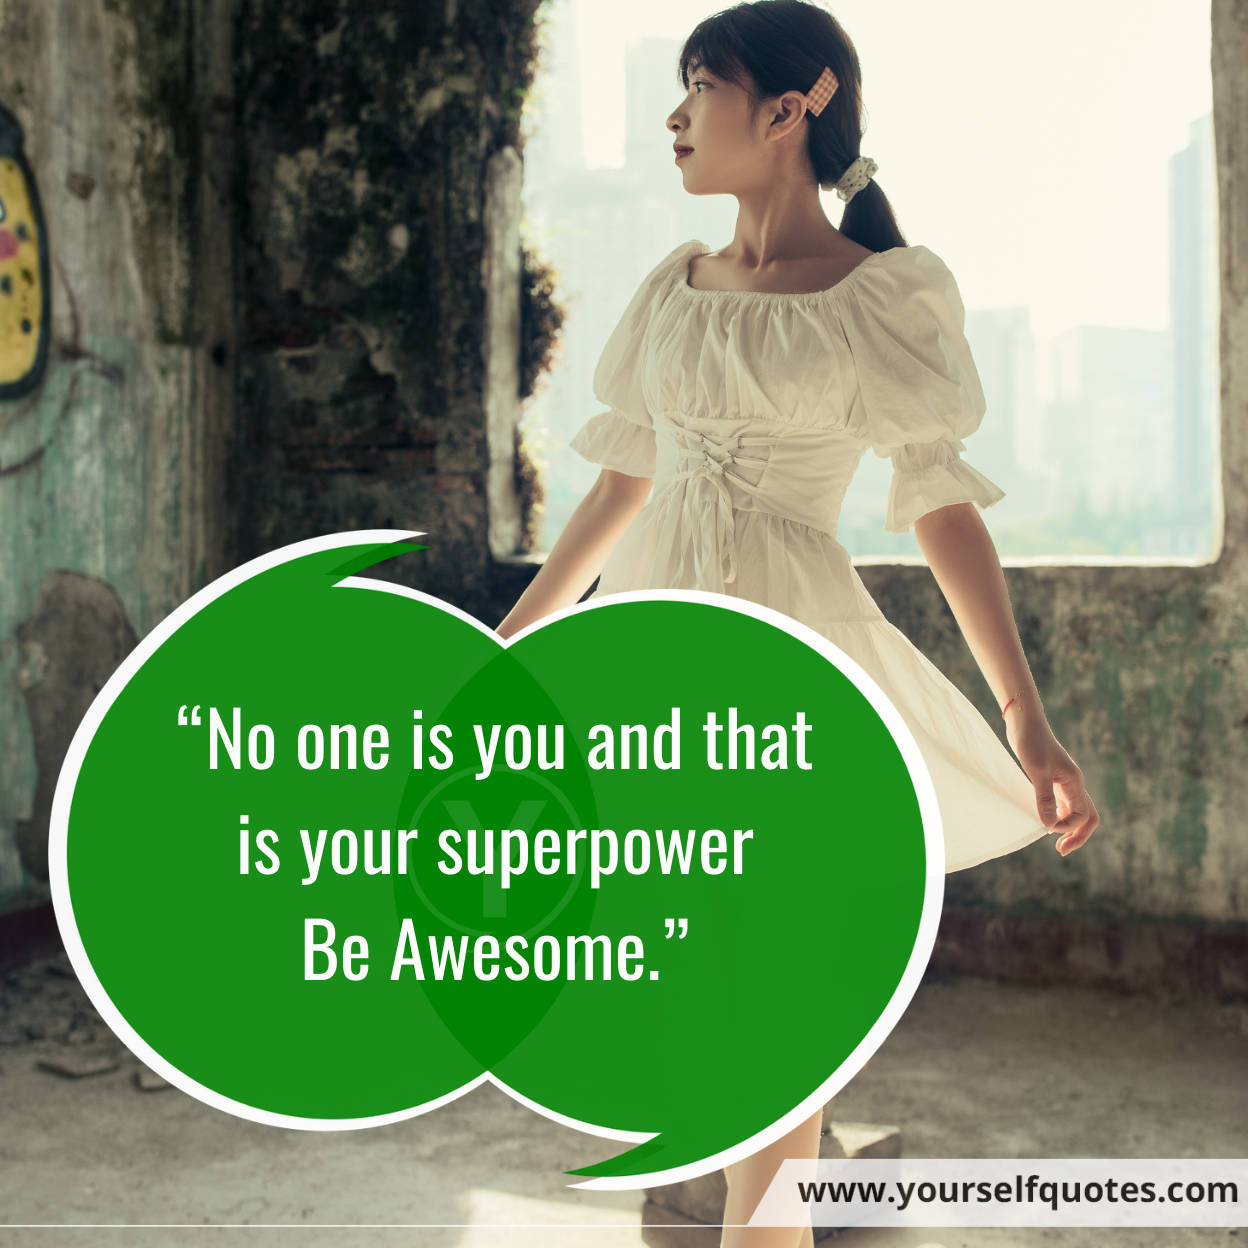 Be Awesome Quotes Images